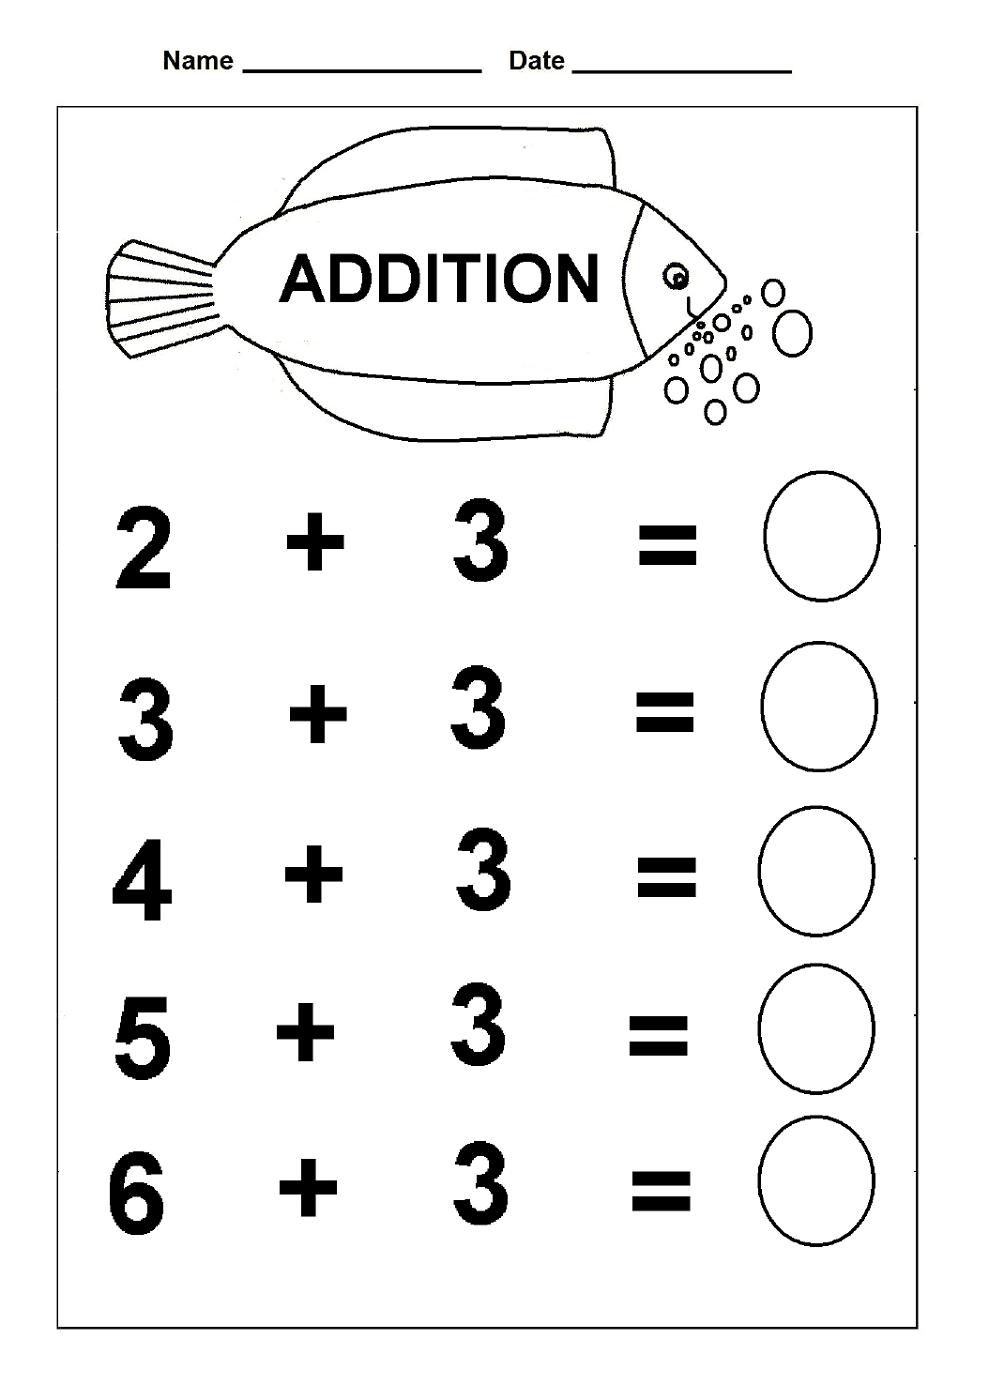 Worksheet For Preschool To Do : Worksheets kids fun opossumsoft